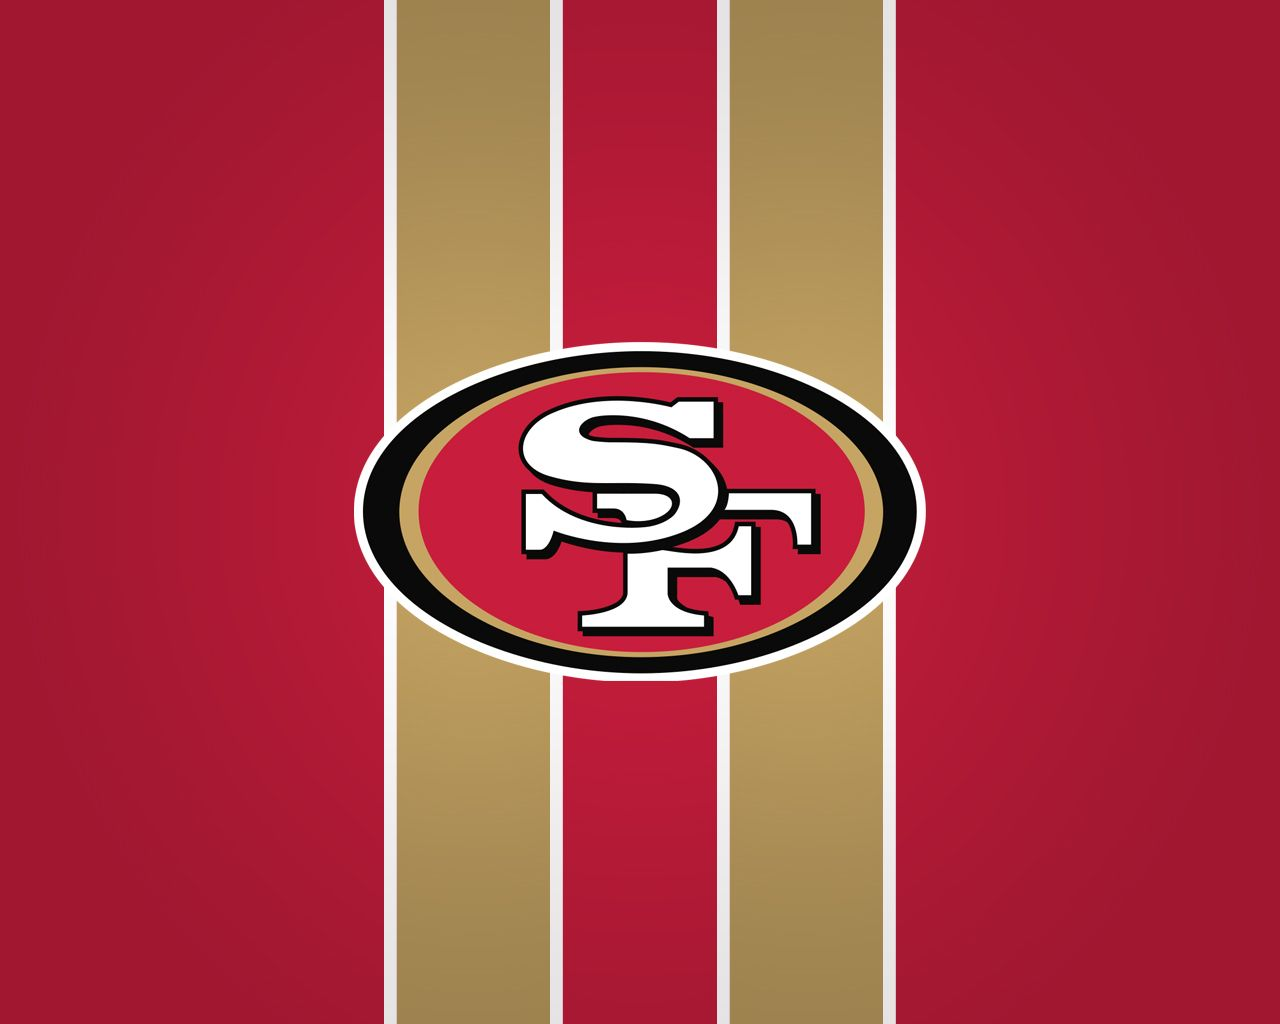 San Francisco 49ers NFL Wallpapers San Francisco 49ers